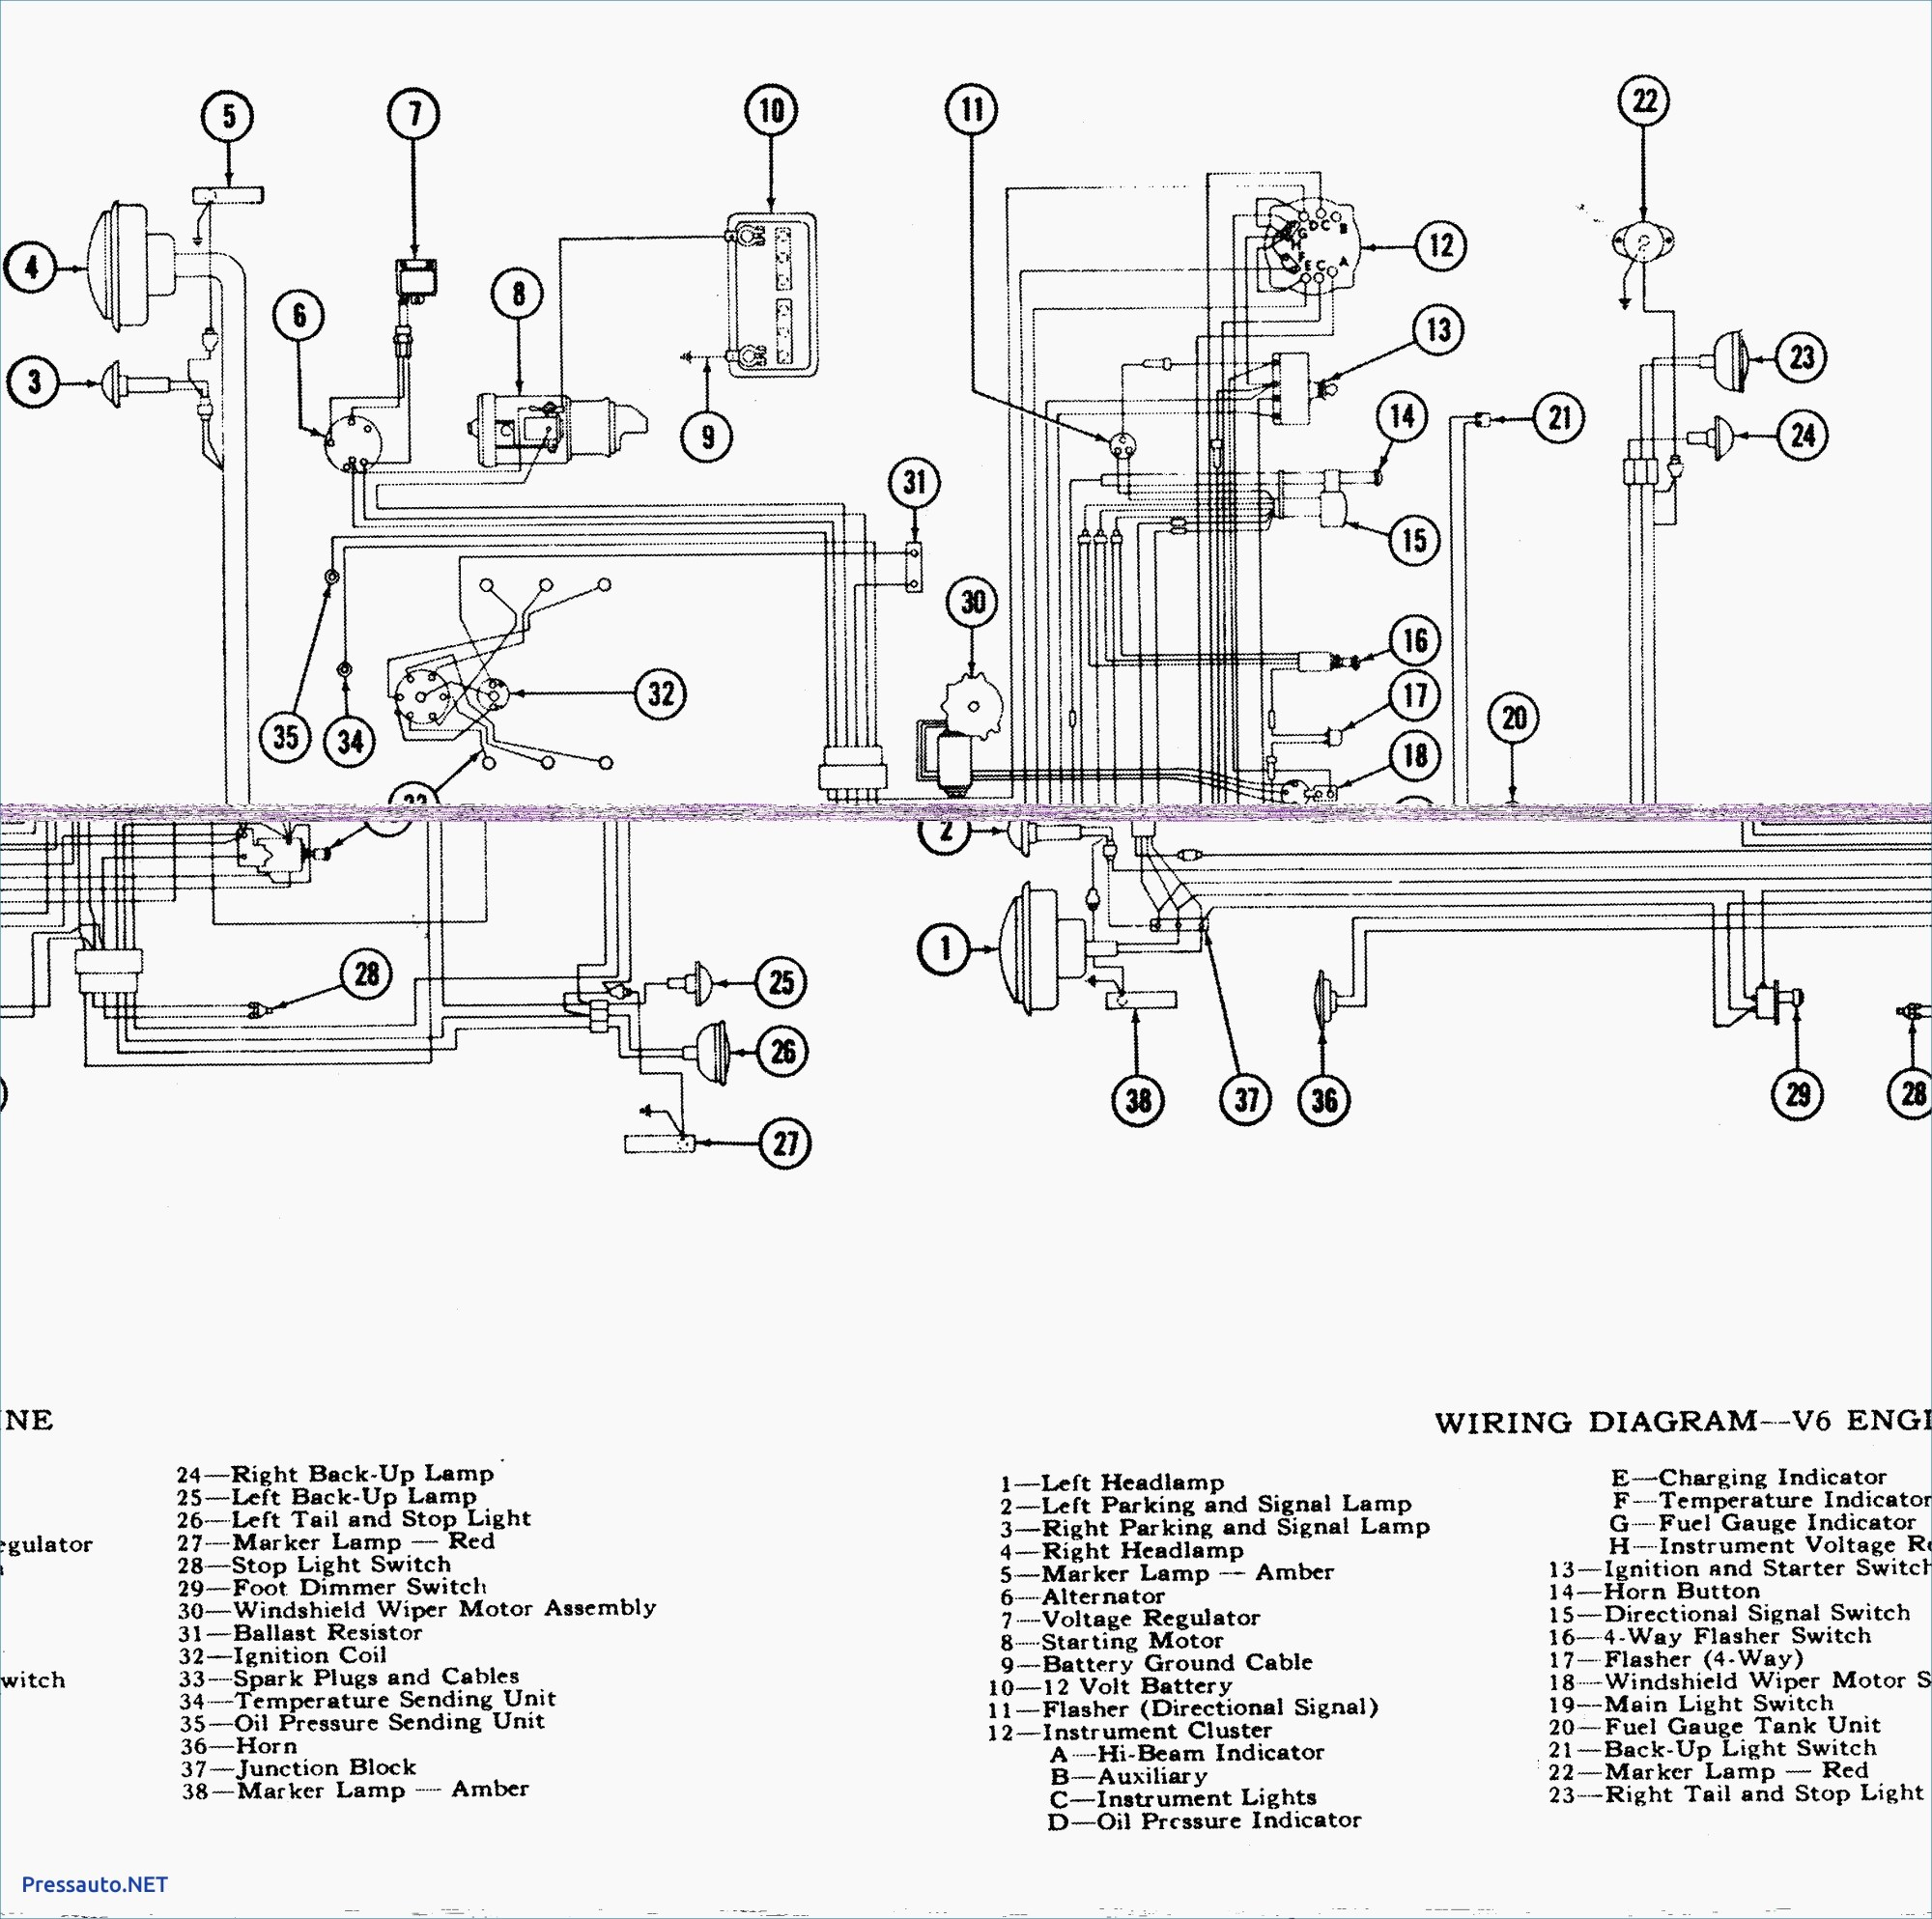 hight resolution of cushman omc engine wiring diagram custom wiring diagram u2022 rh littlewaves co omc 140 engine wiring